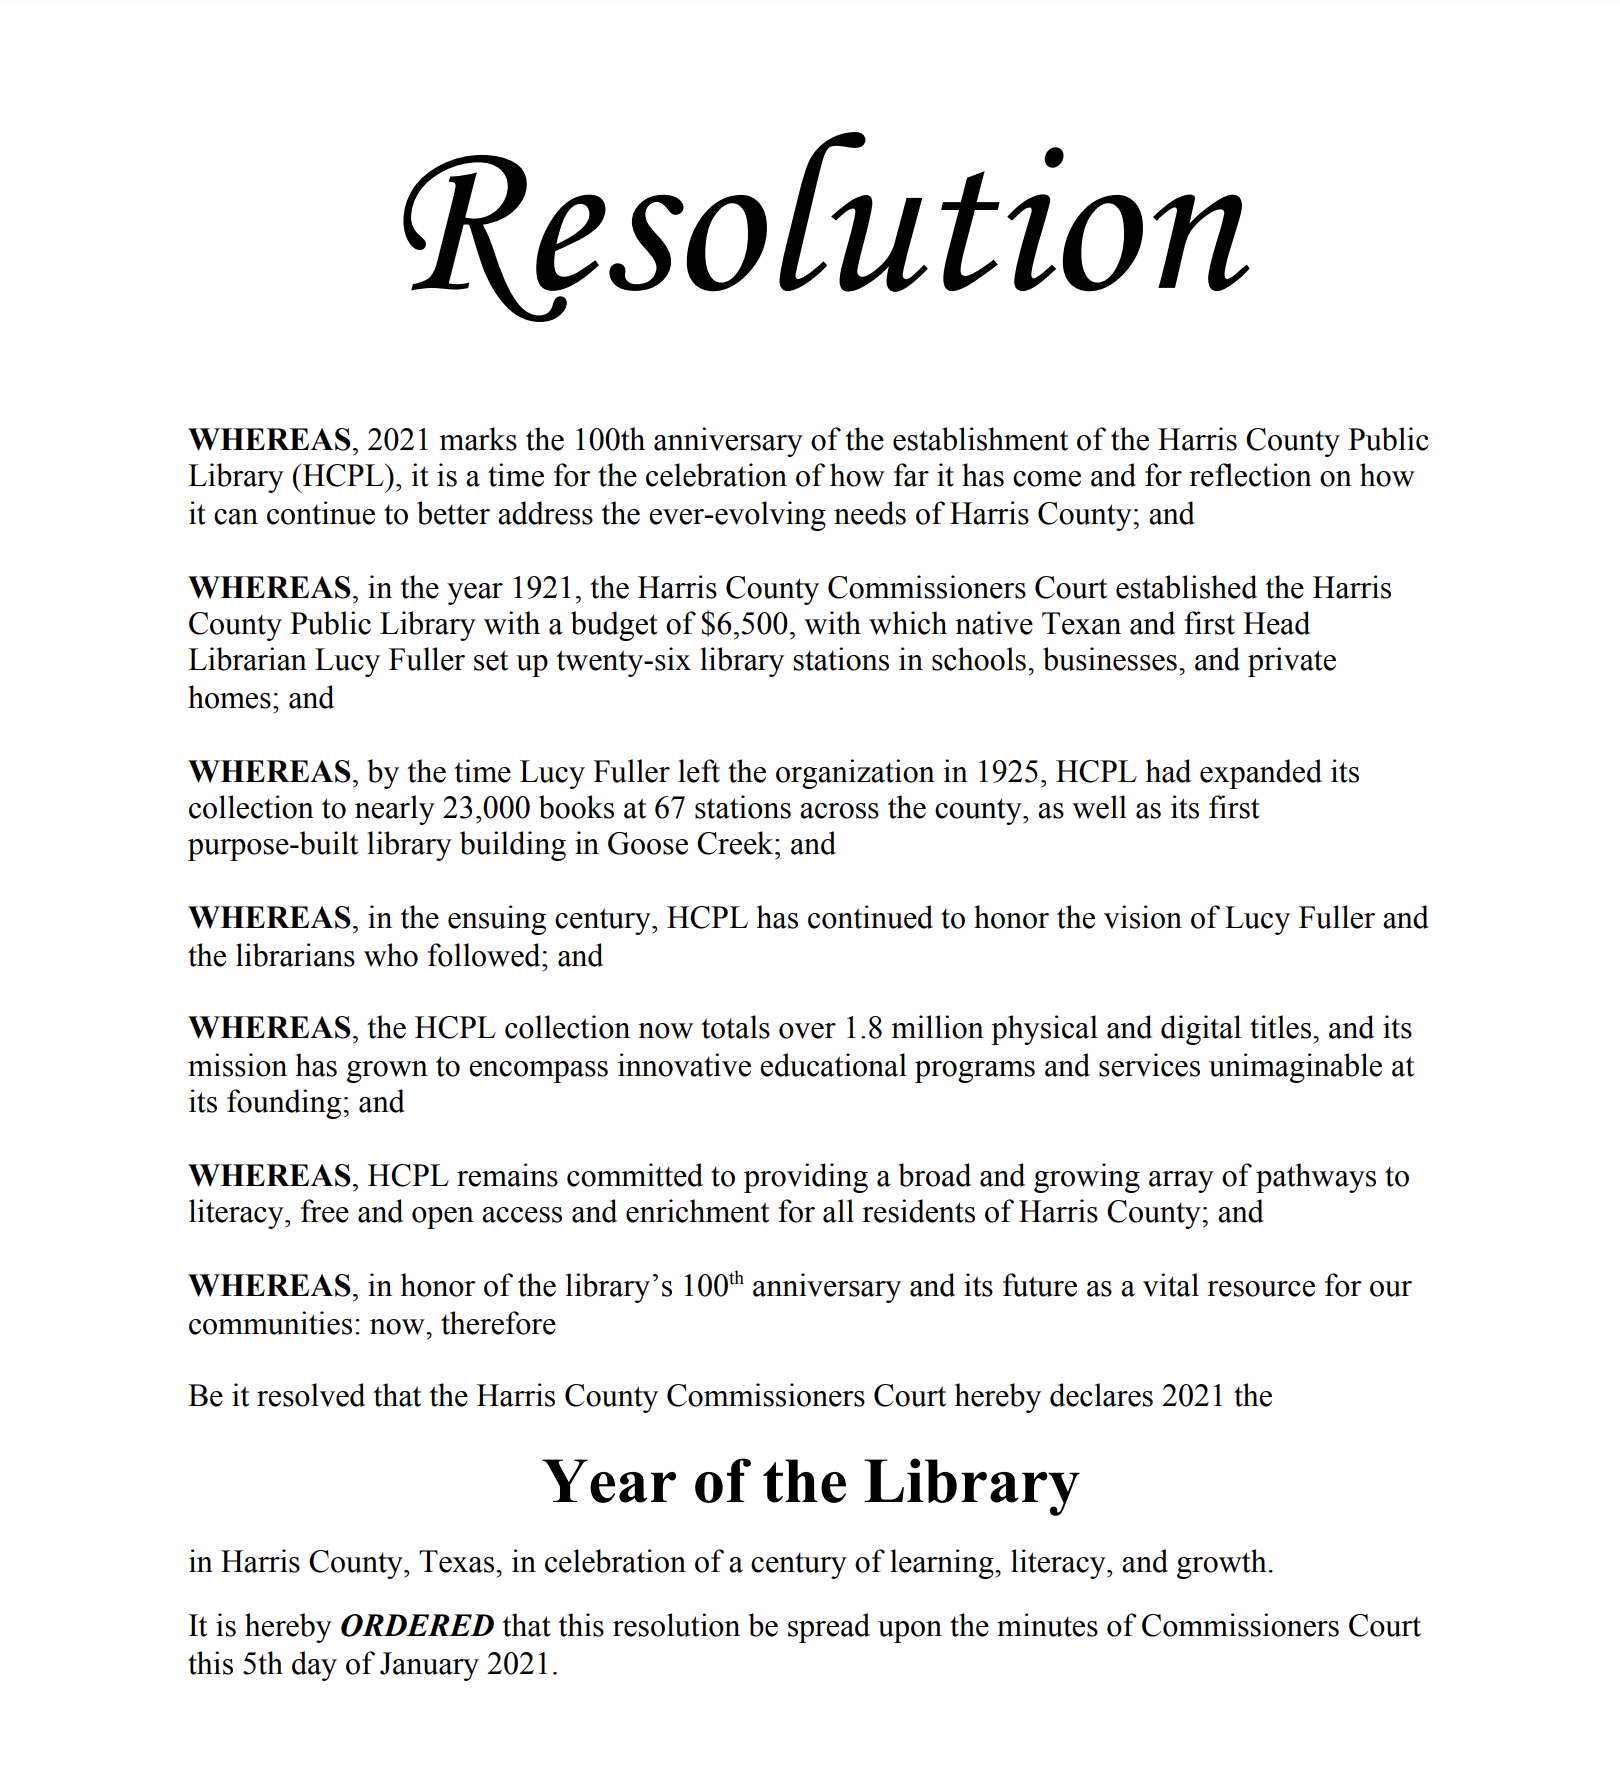 Facsimile image of Harris County Commissioners Court Year of the Library Resolution